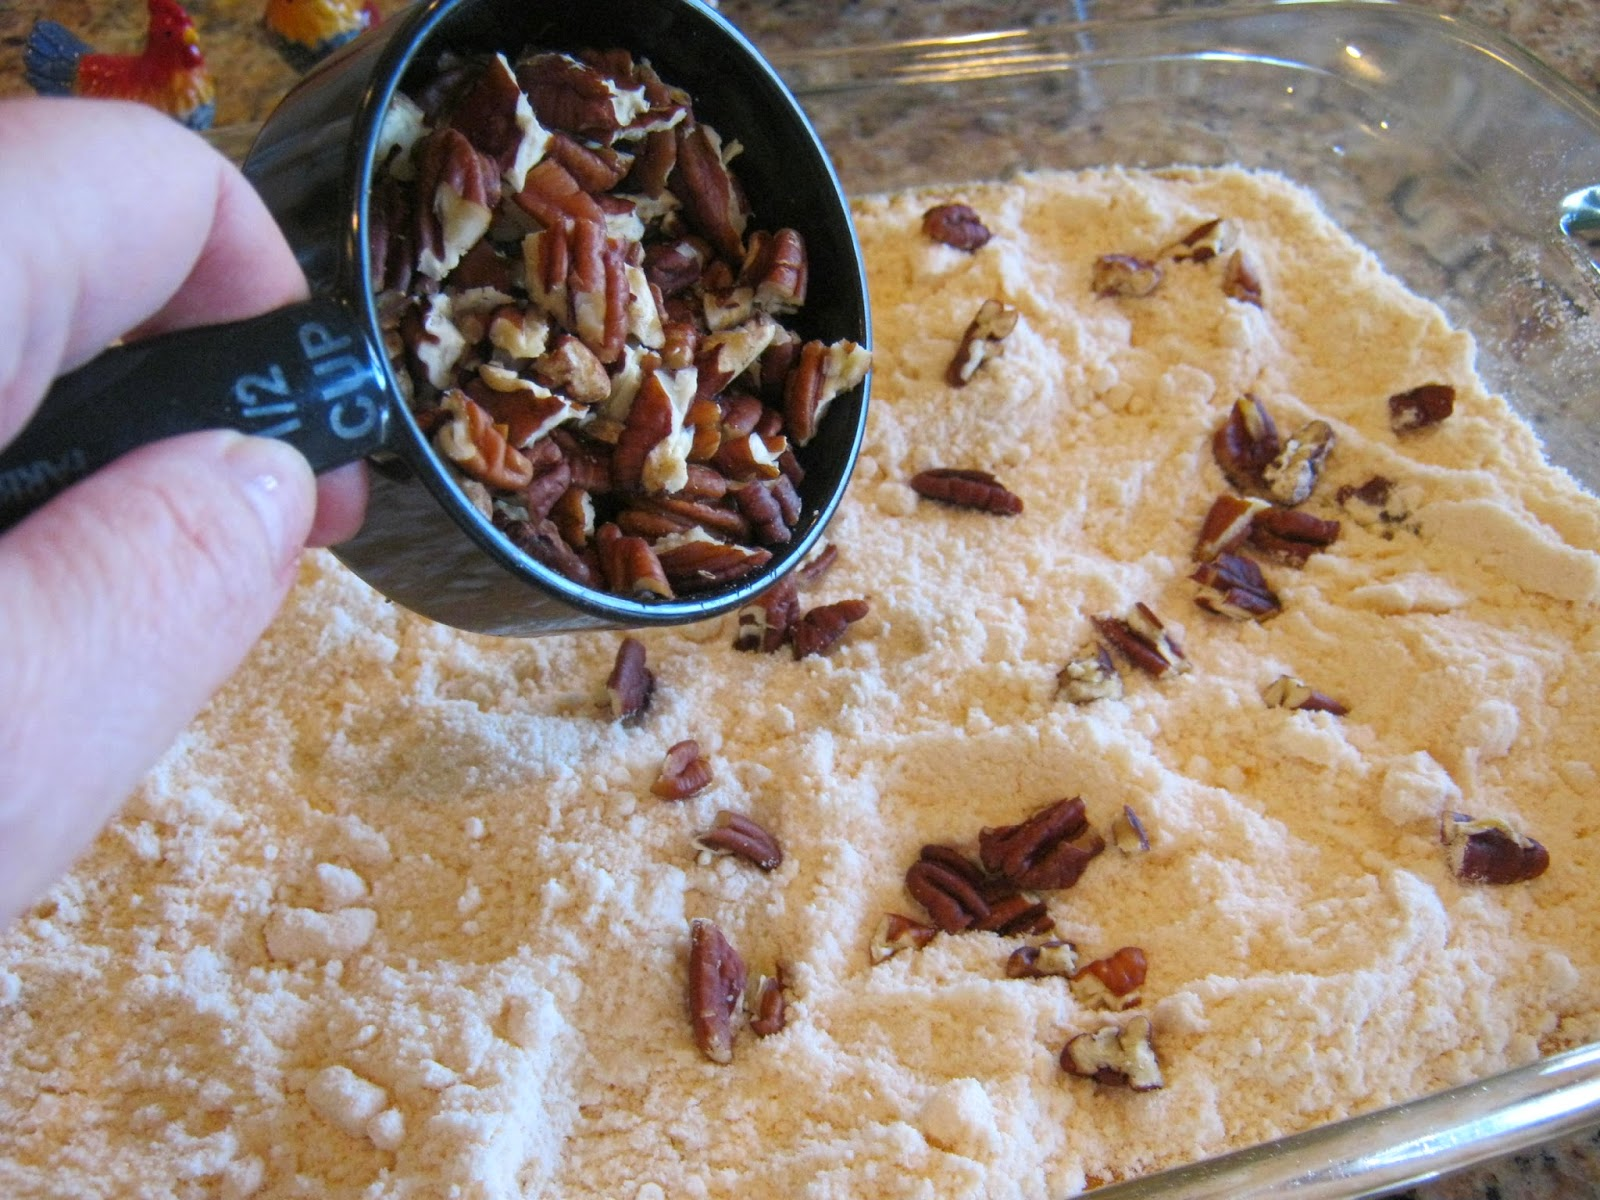 Add dry cake mix and pecans on top.